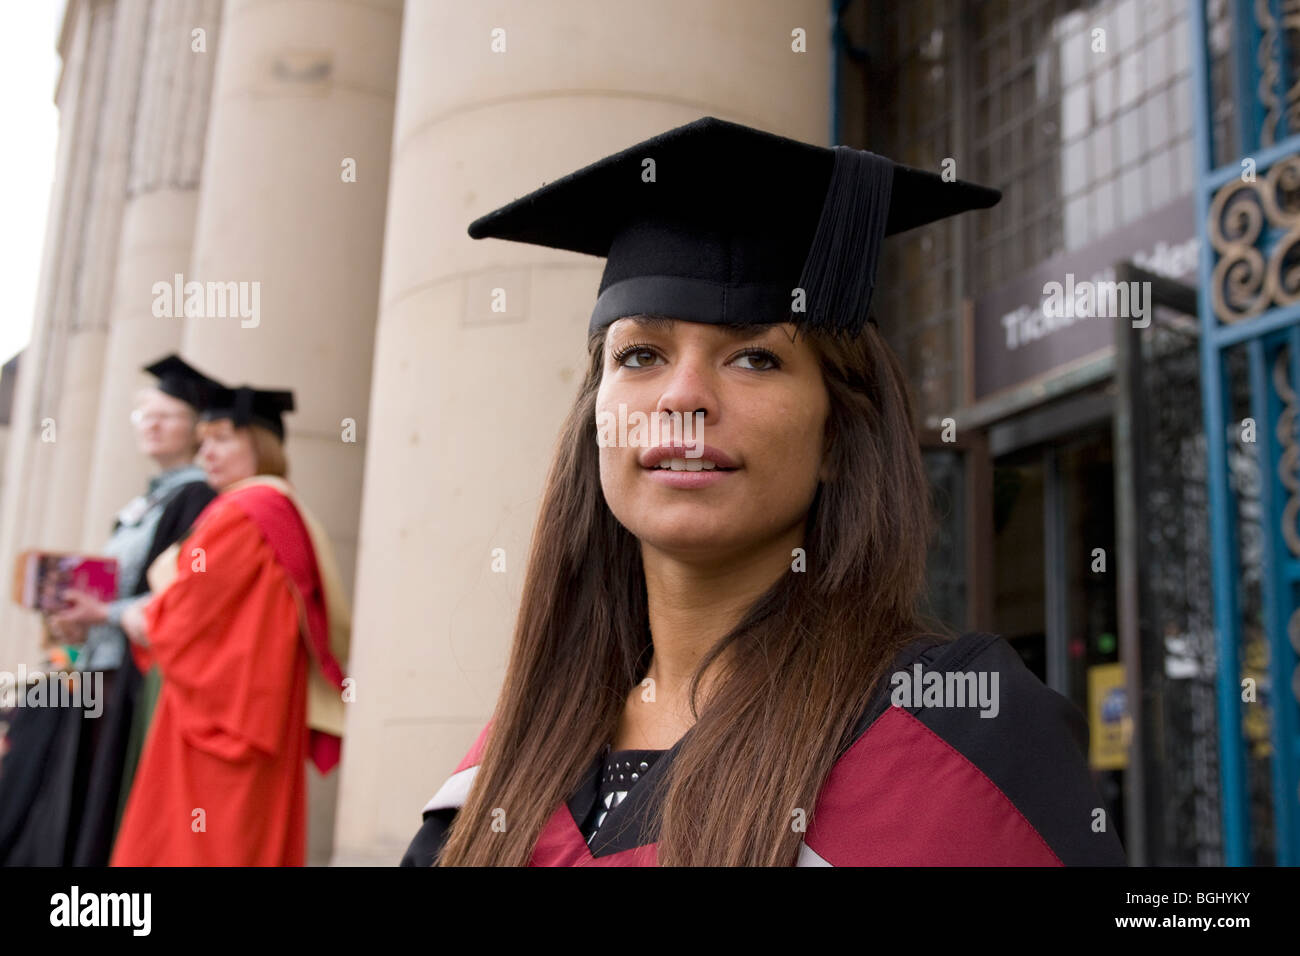 apprehensive young woman on graduation day outside venue - Stock Image